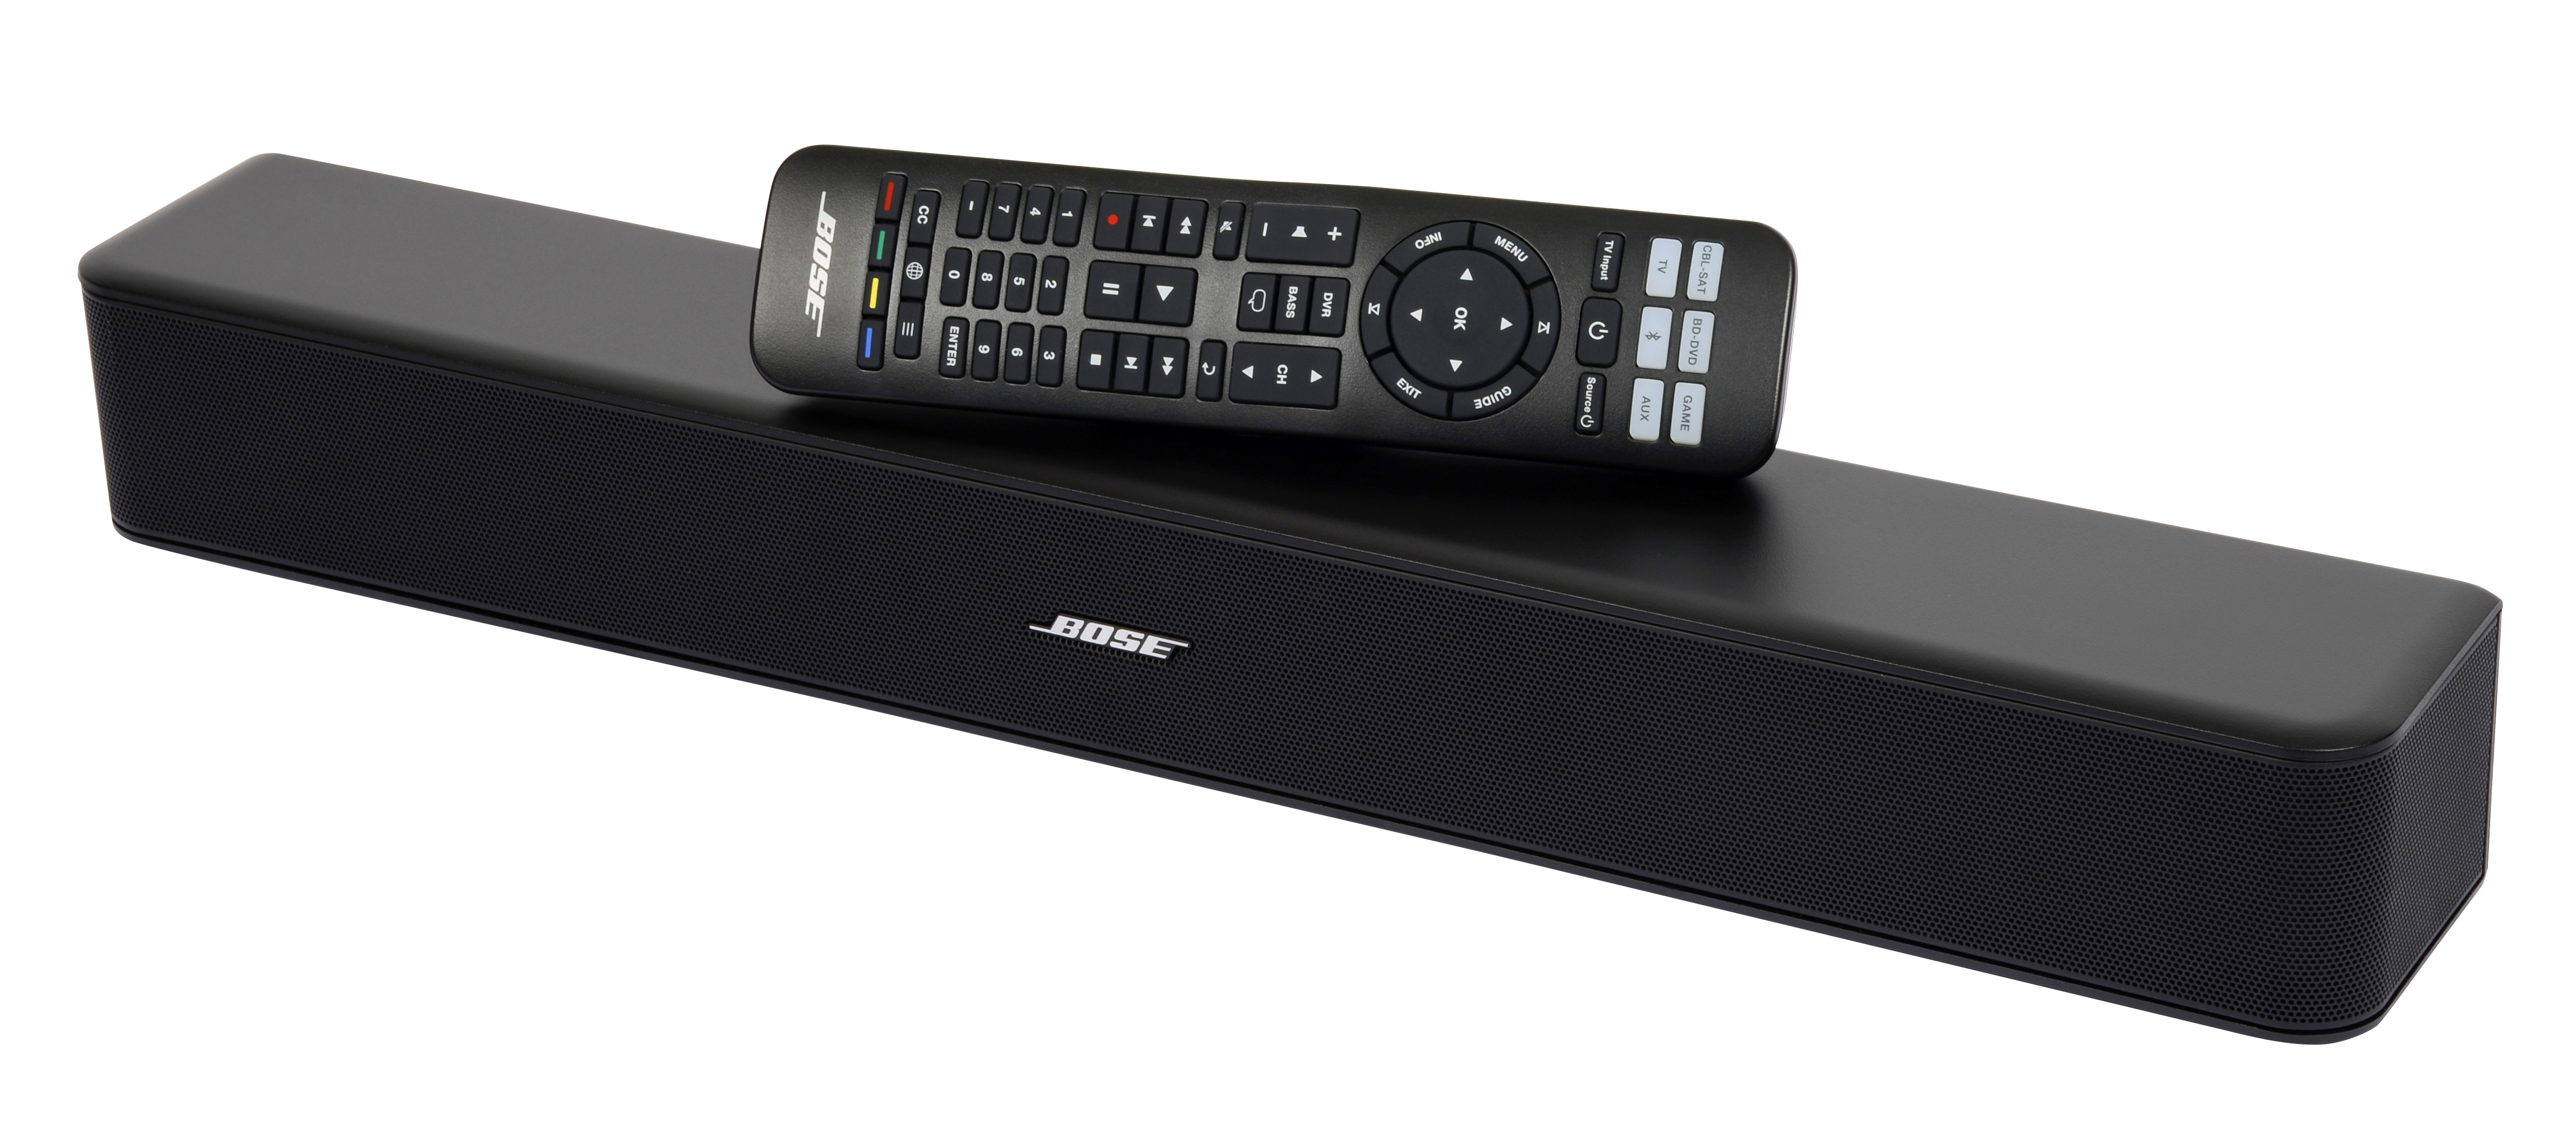 Buy Solo 5 Tv Sound System Online Solo 5 Tv Sound System